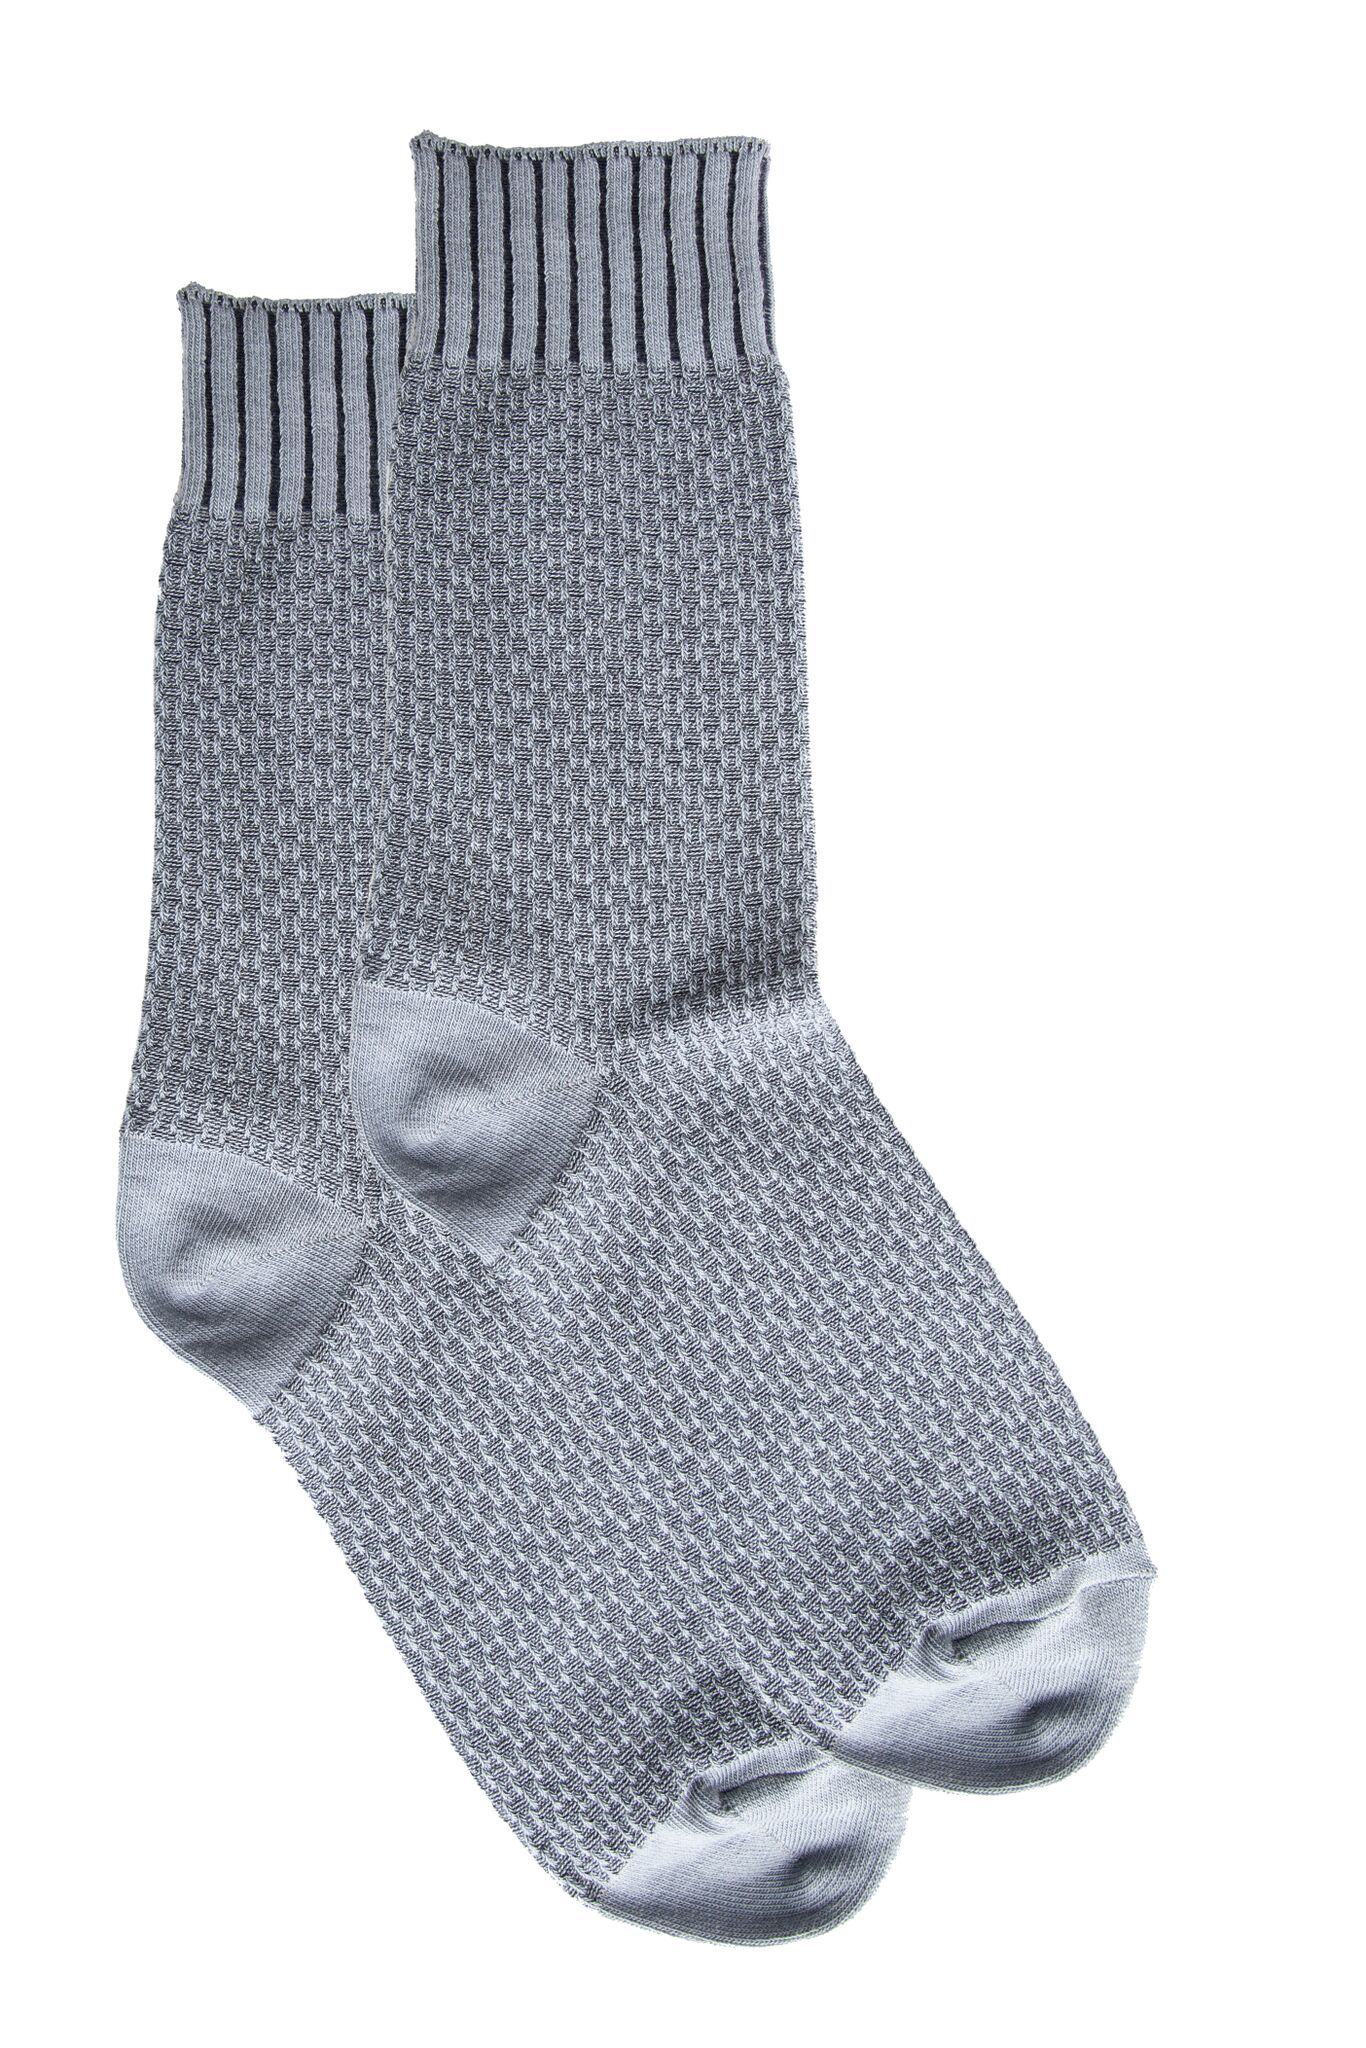 Sparks Sock Dark Grey Mel Sock MP Crafted Garments - der ZEITGEIST